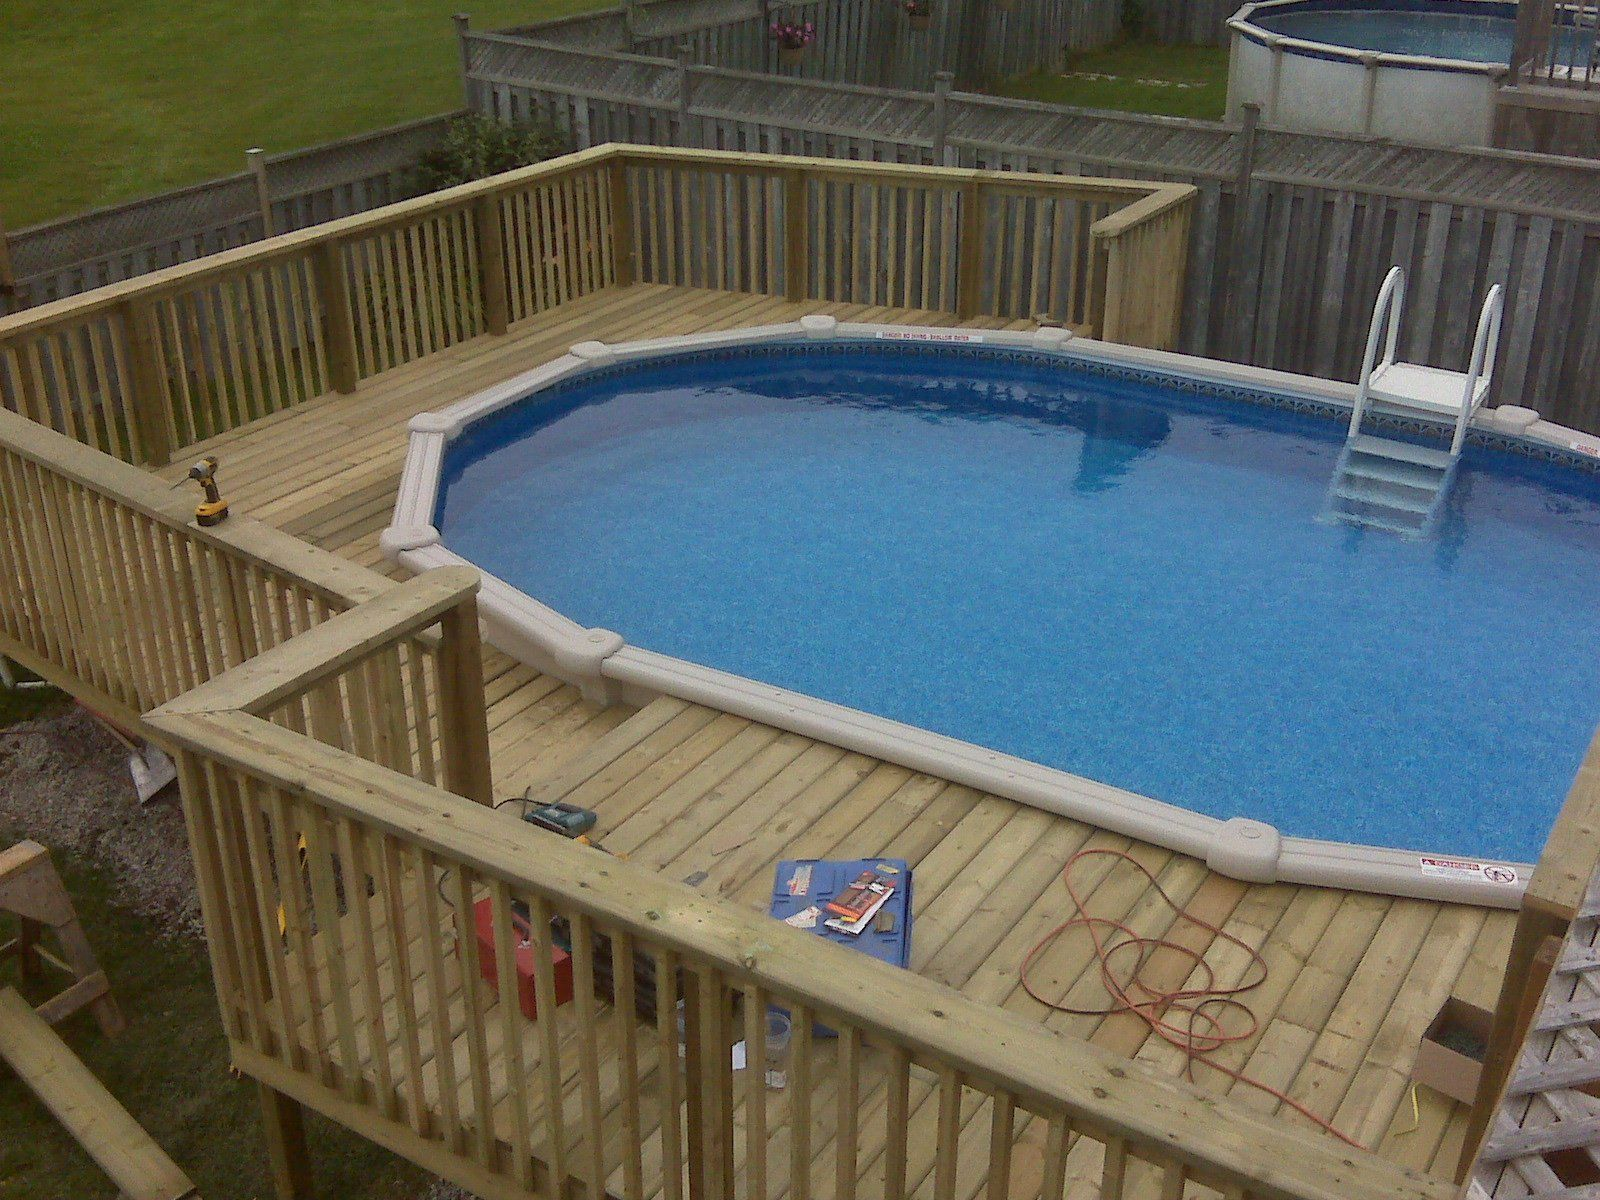 Swimming pool decks patios pinterest backyard for Best material for deck